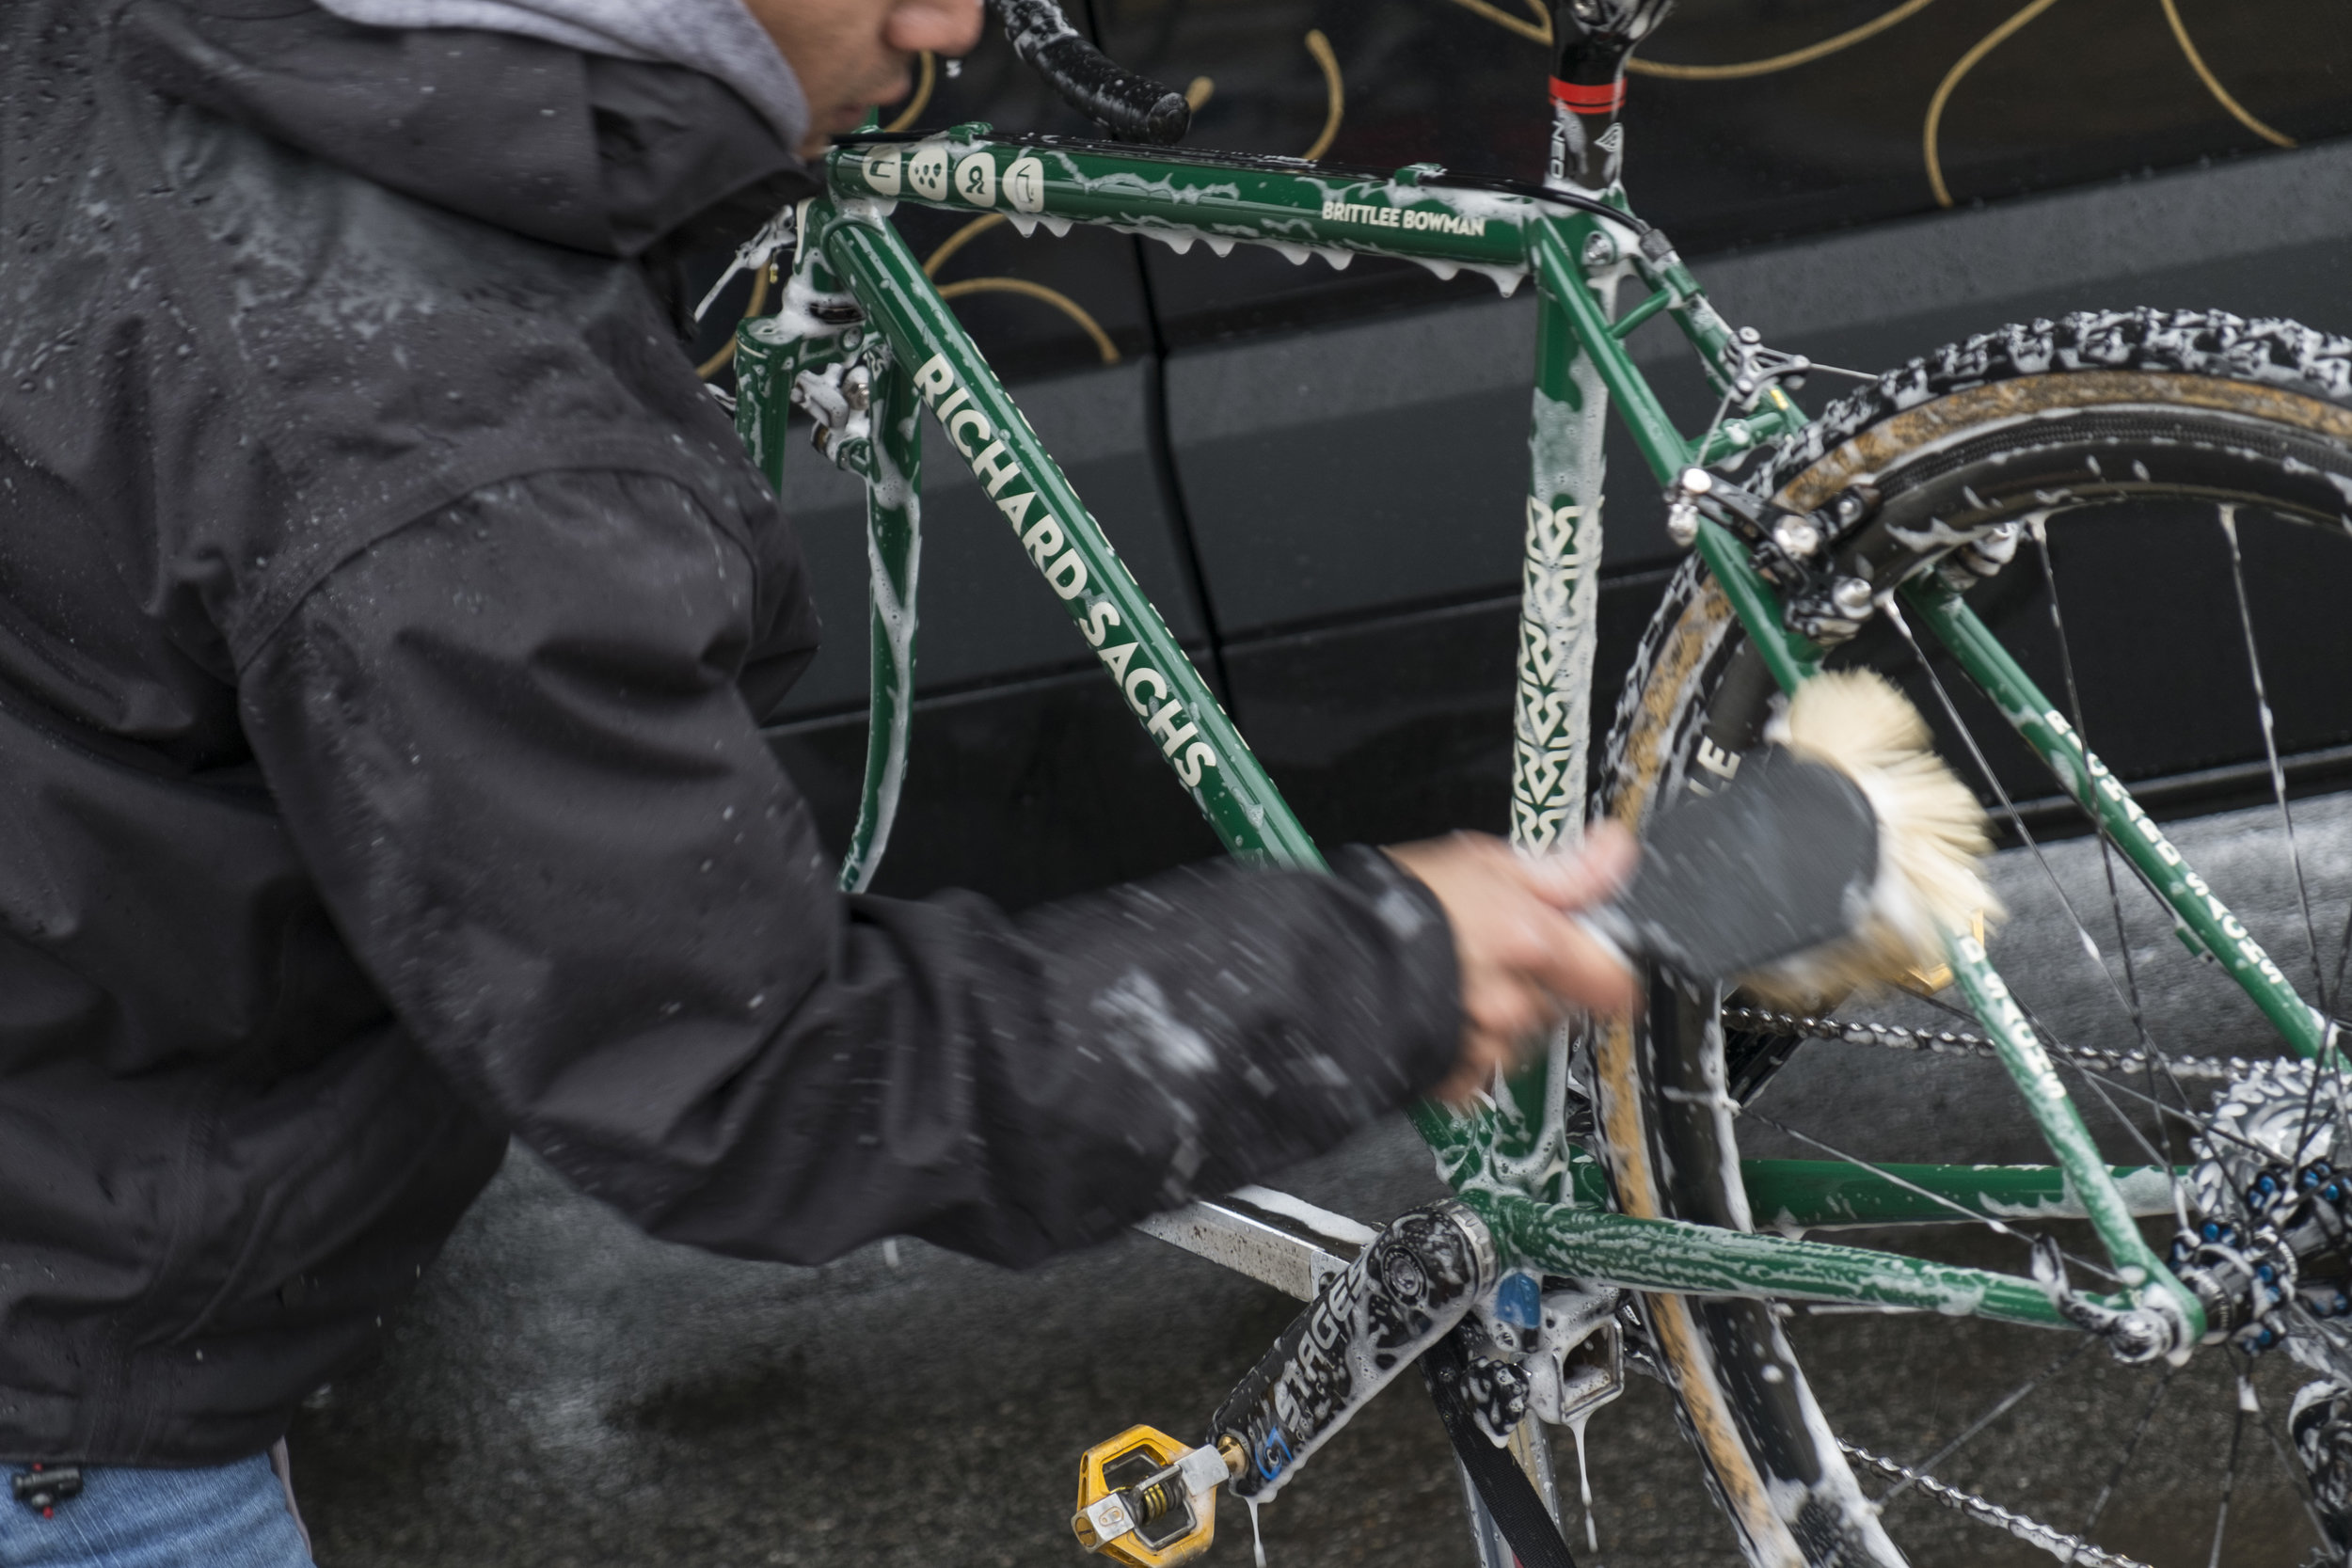 The Rover started the week getting BRITTLEE BOWMAN'S bikes 100% That started w/ getting every part clean.